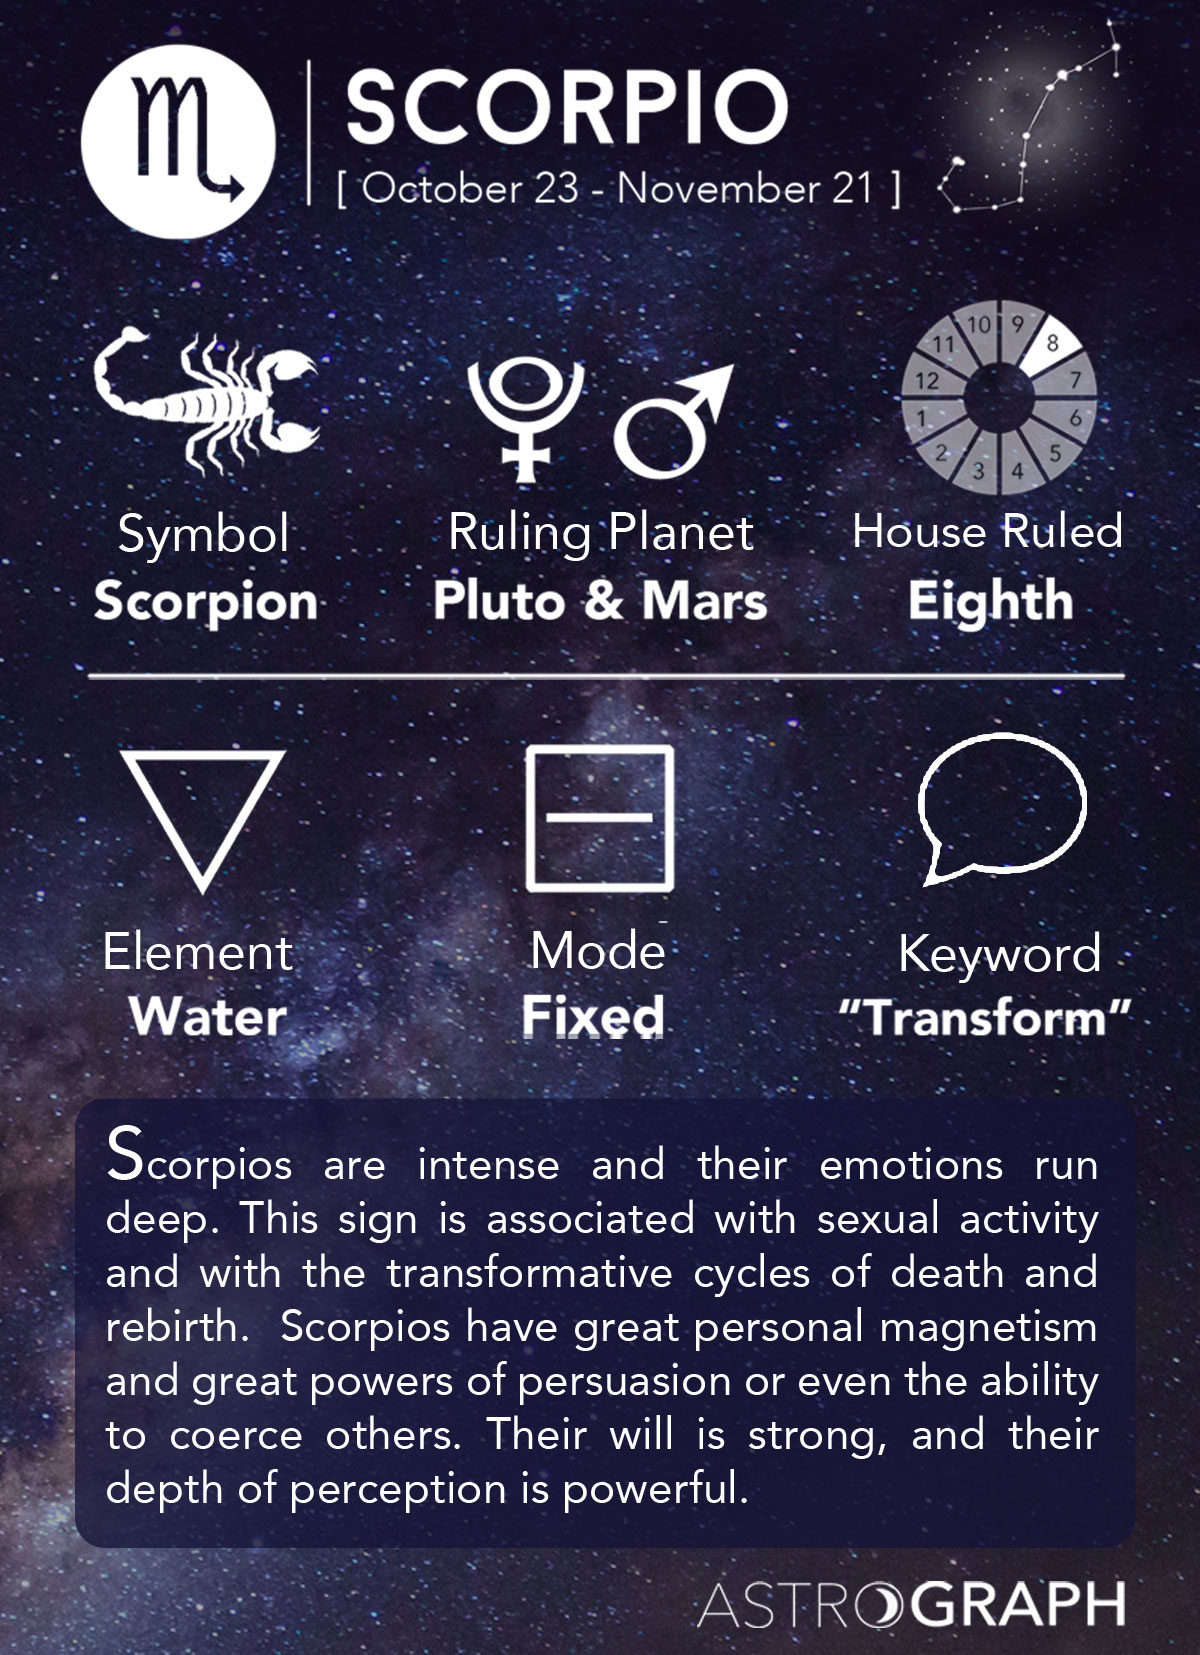 ASTROGRAPH - Scorpio in Astrology